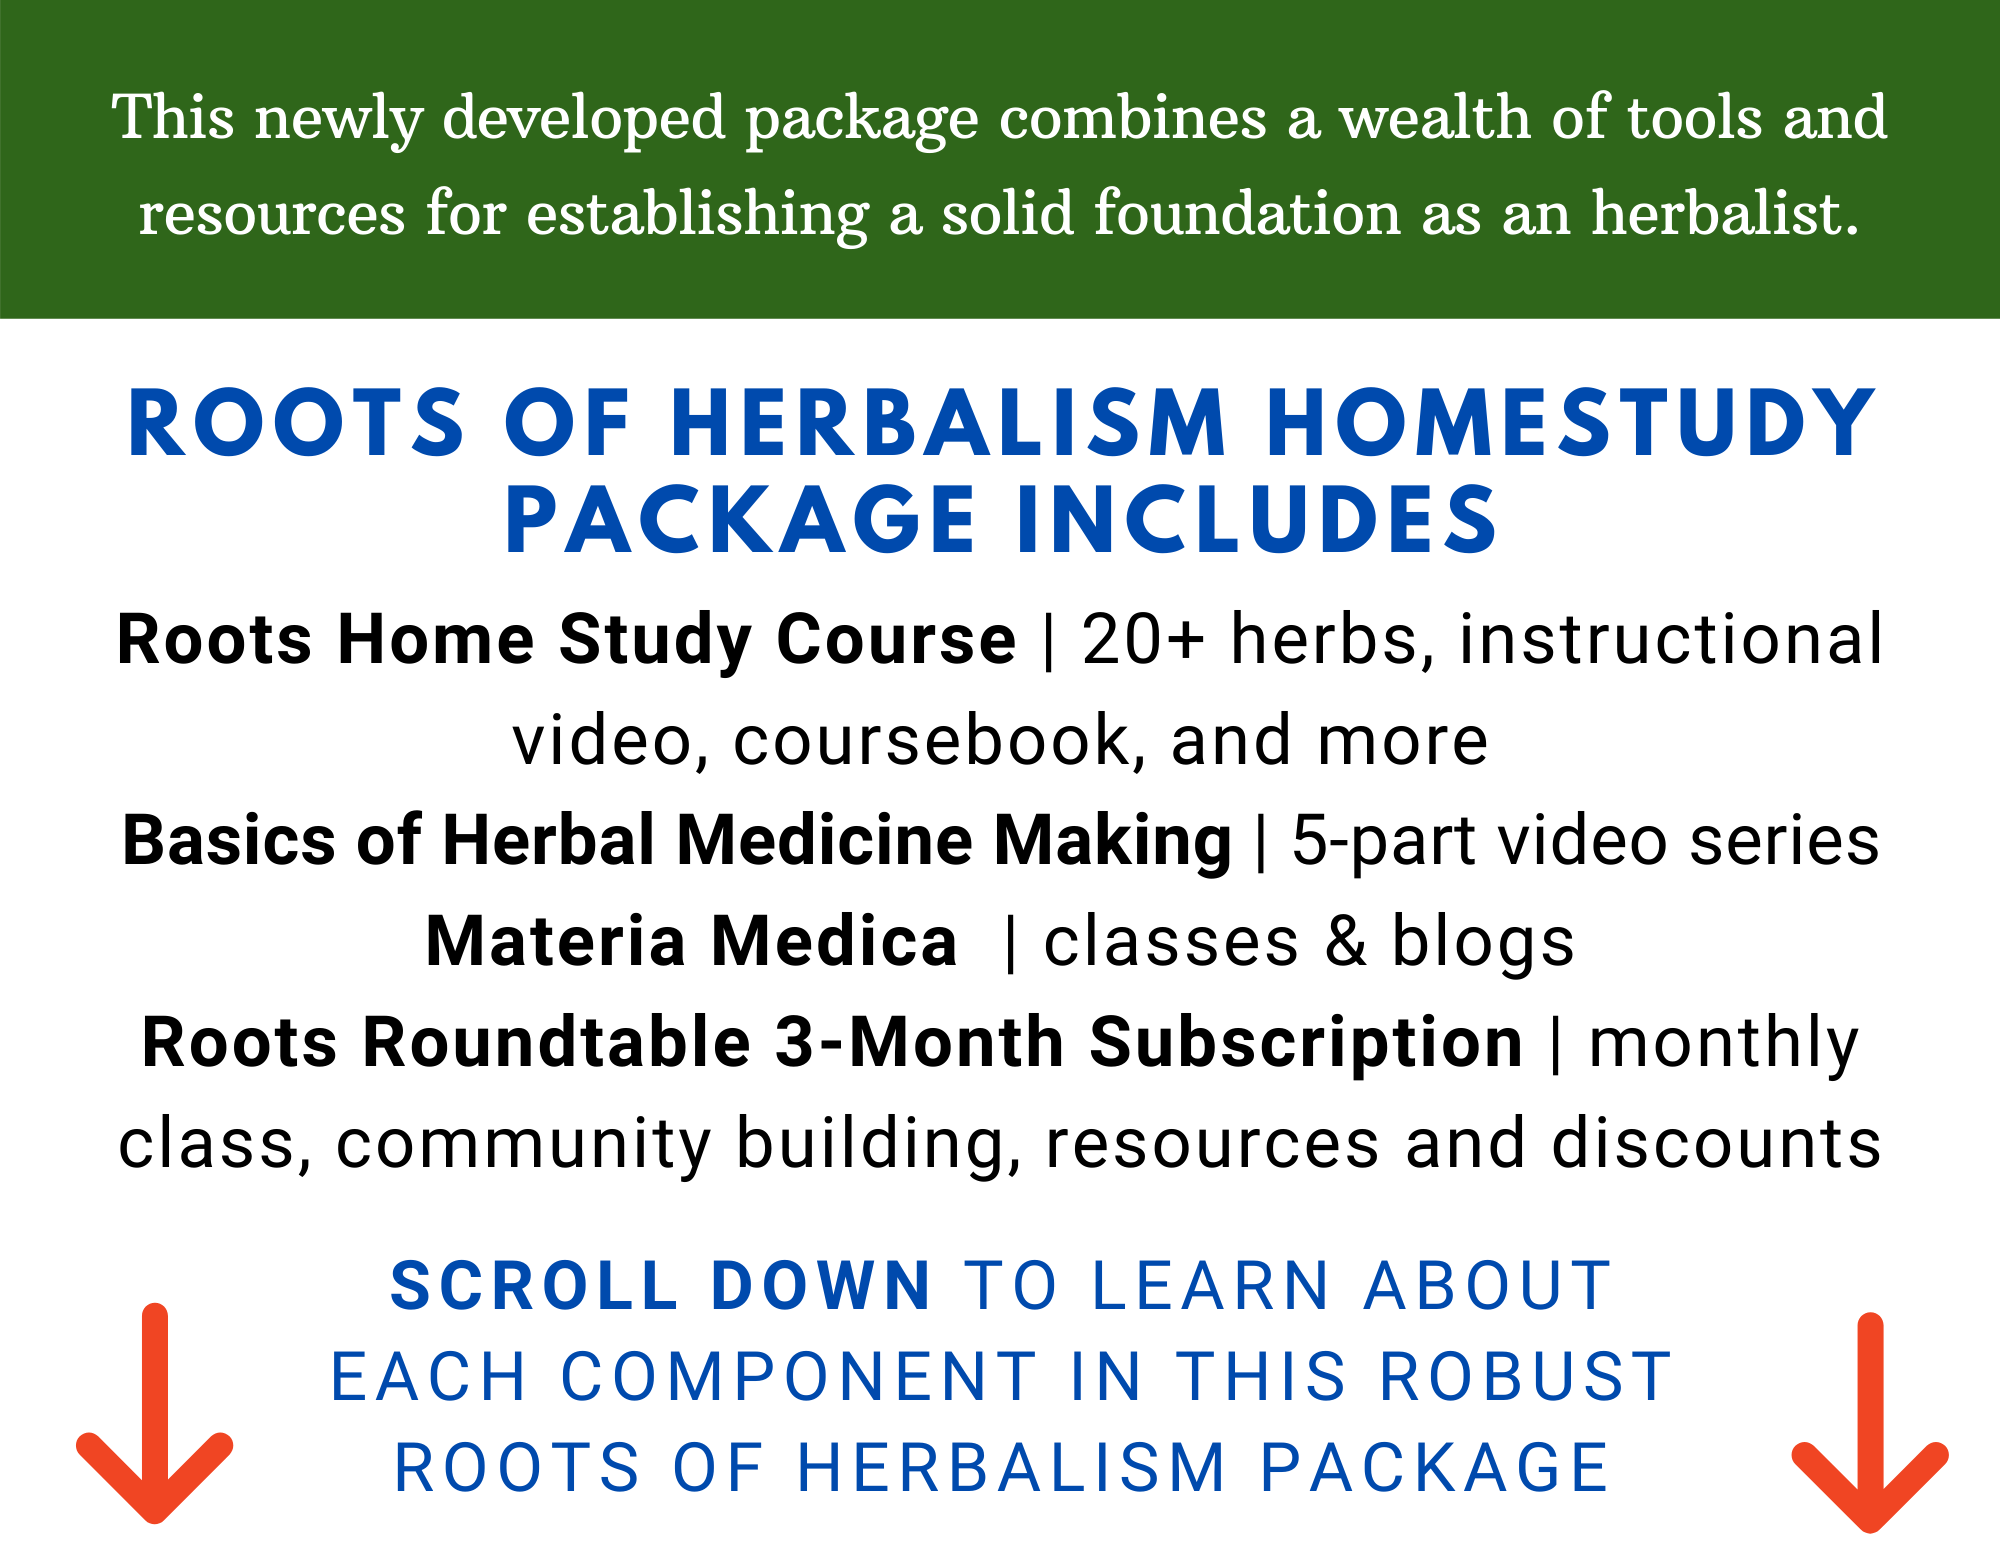 This package combines a wealth of tools and resources for establishing a solid foundation as an herbalist.